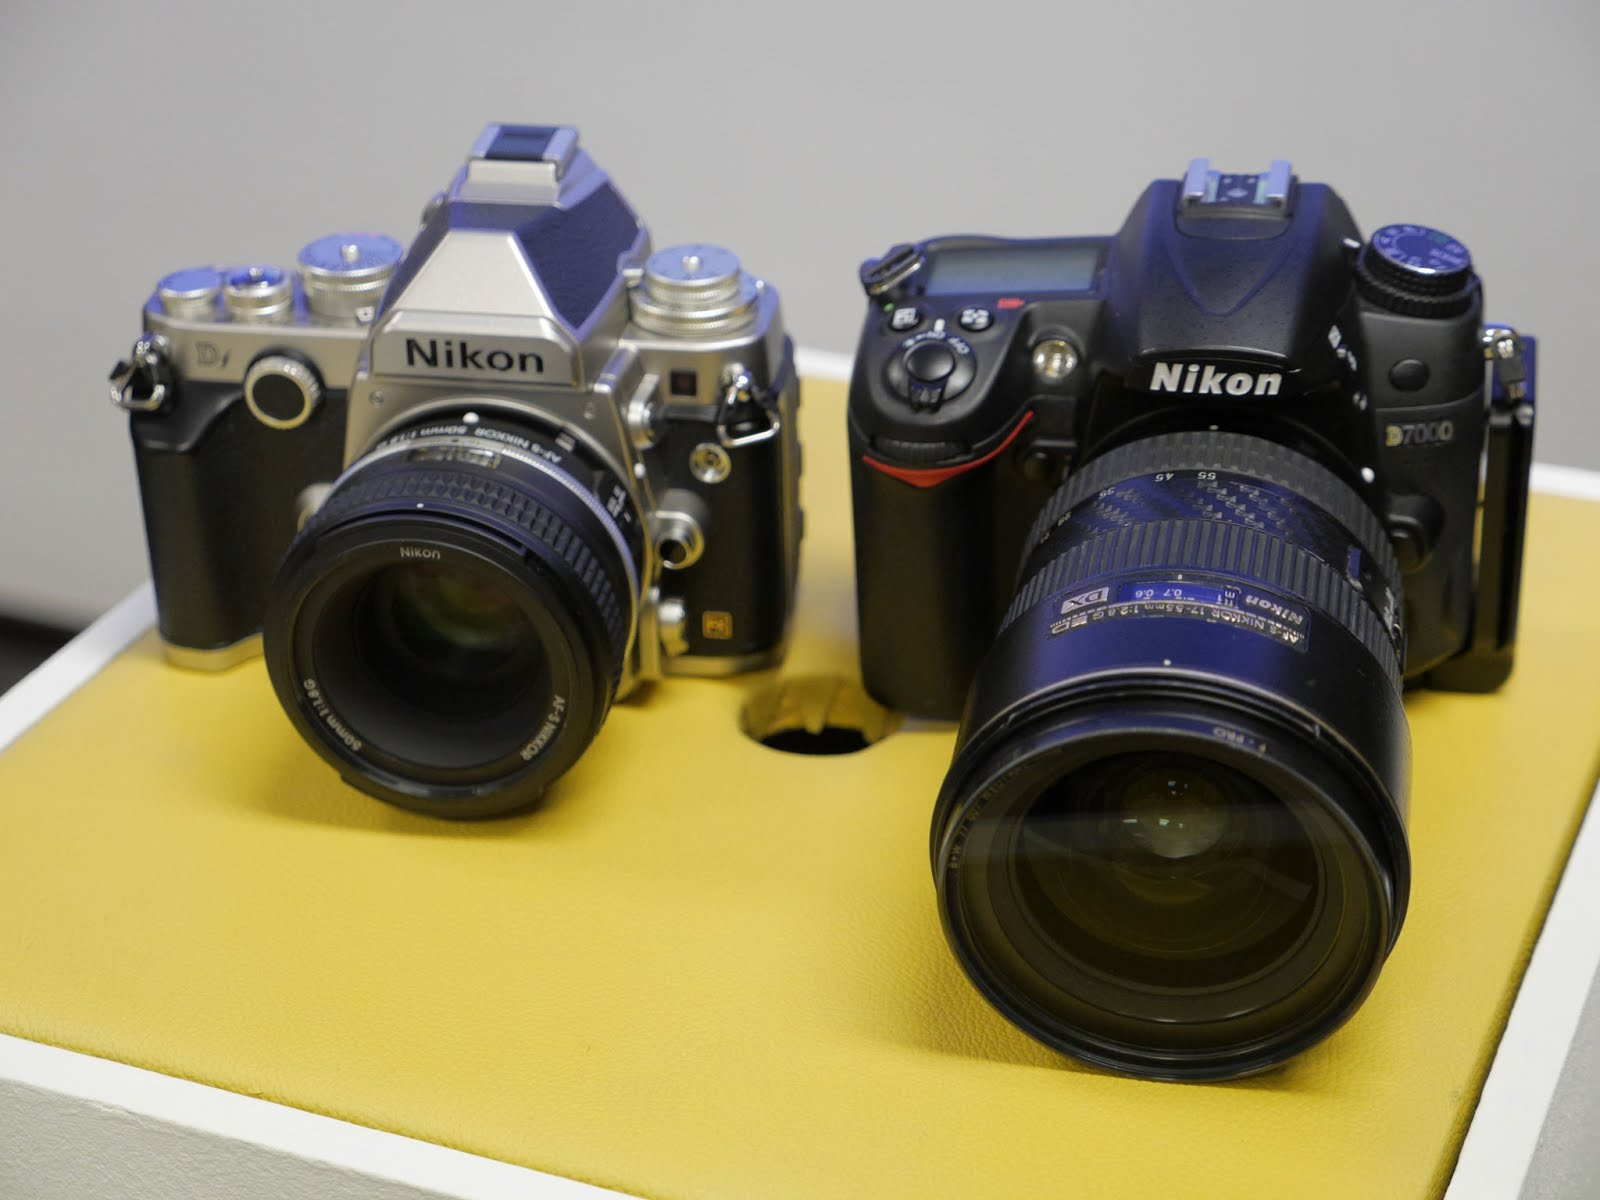 Nikon Df next to Nikon D7000